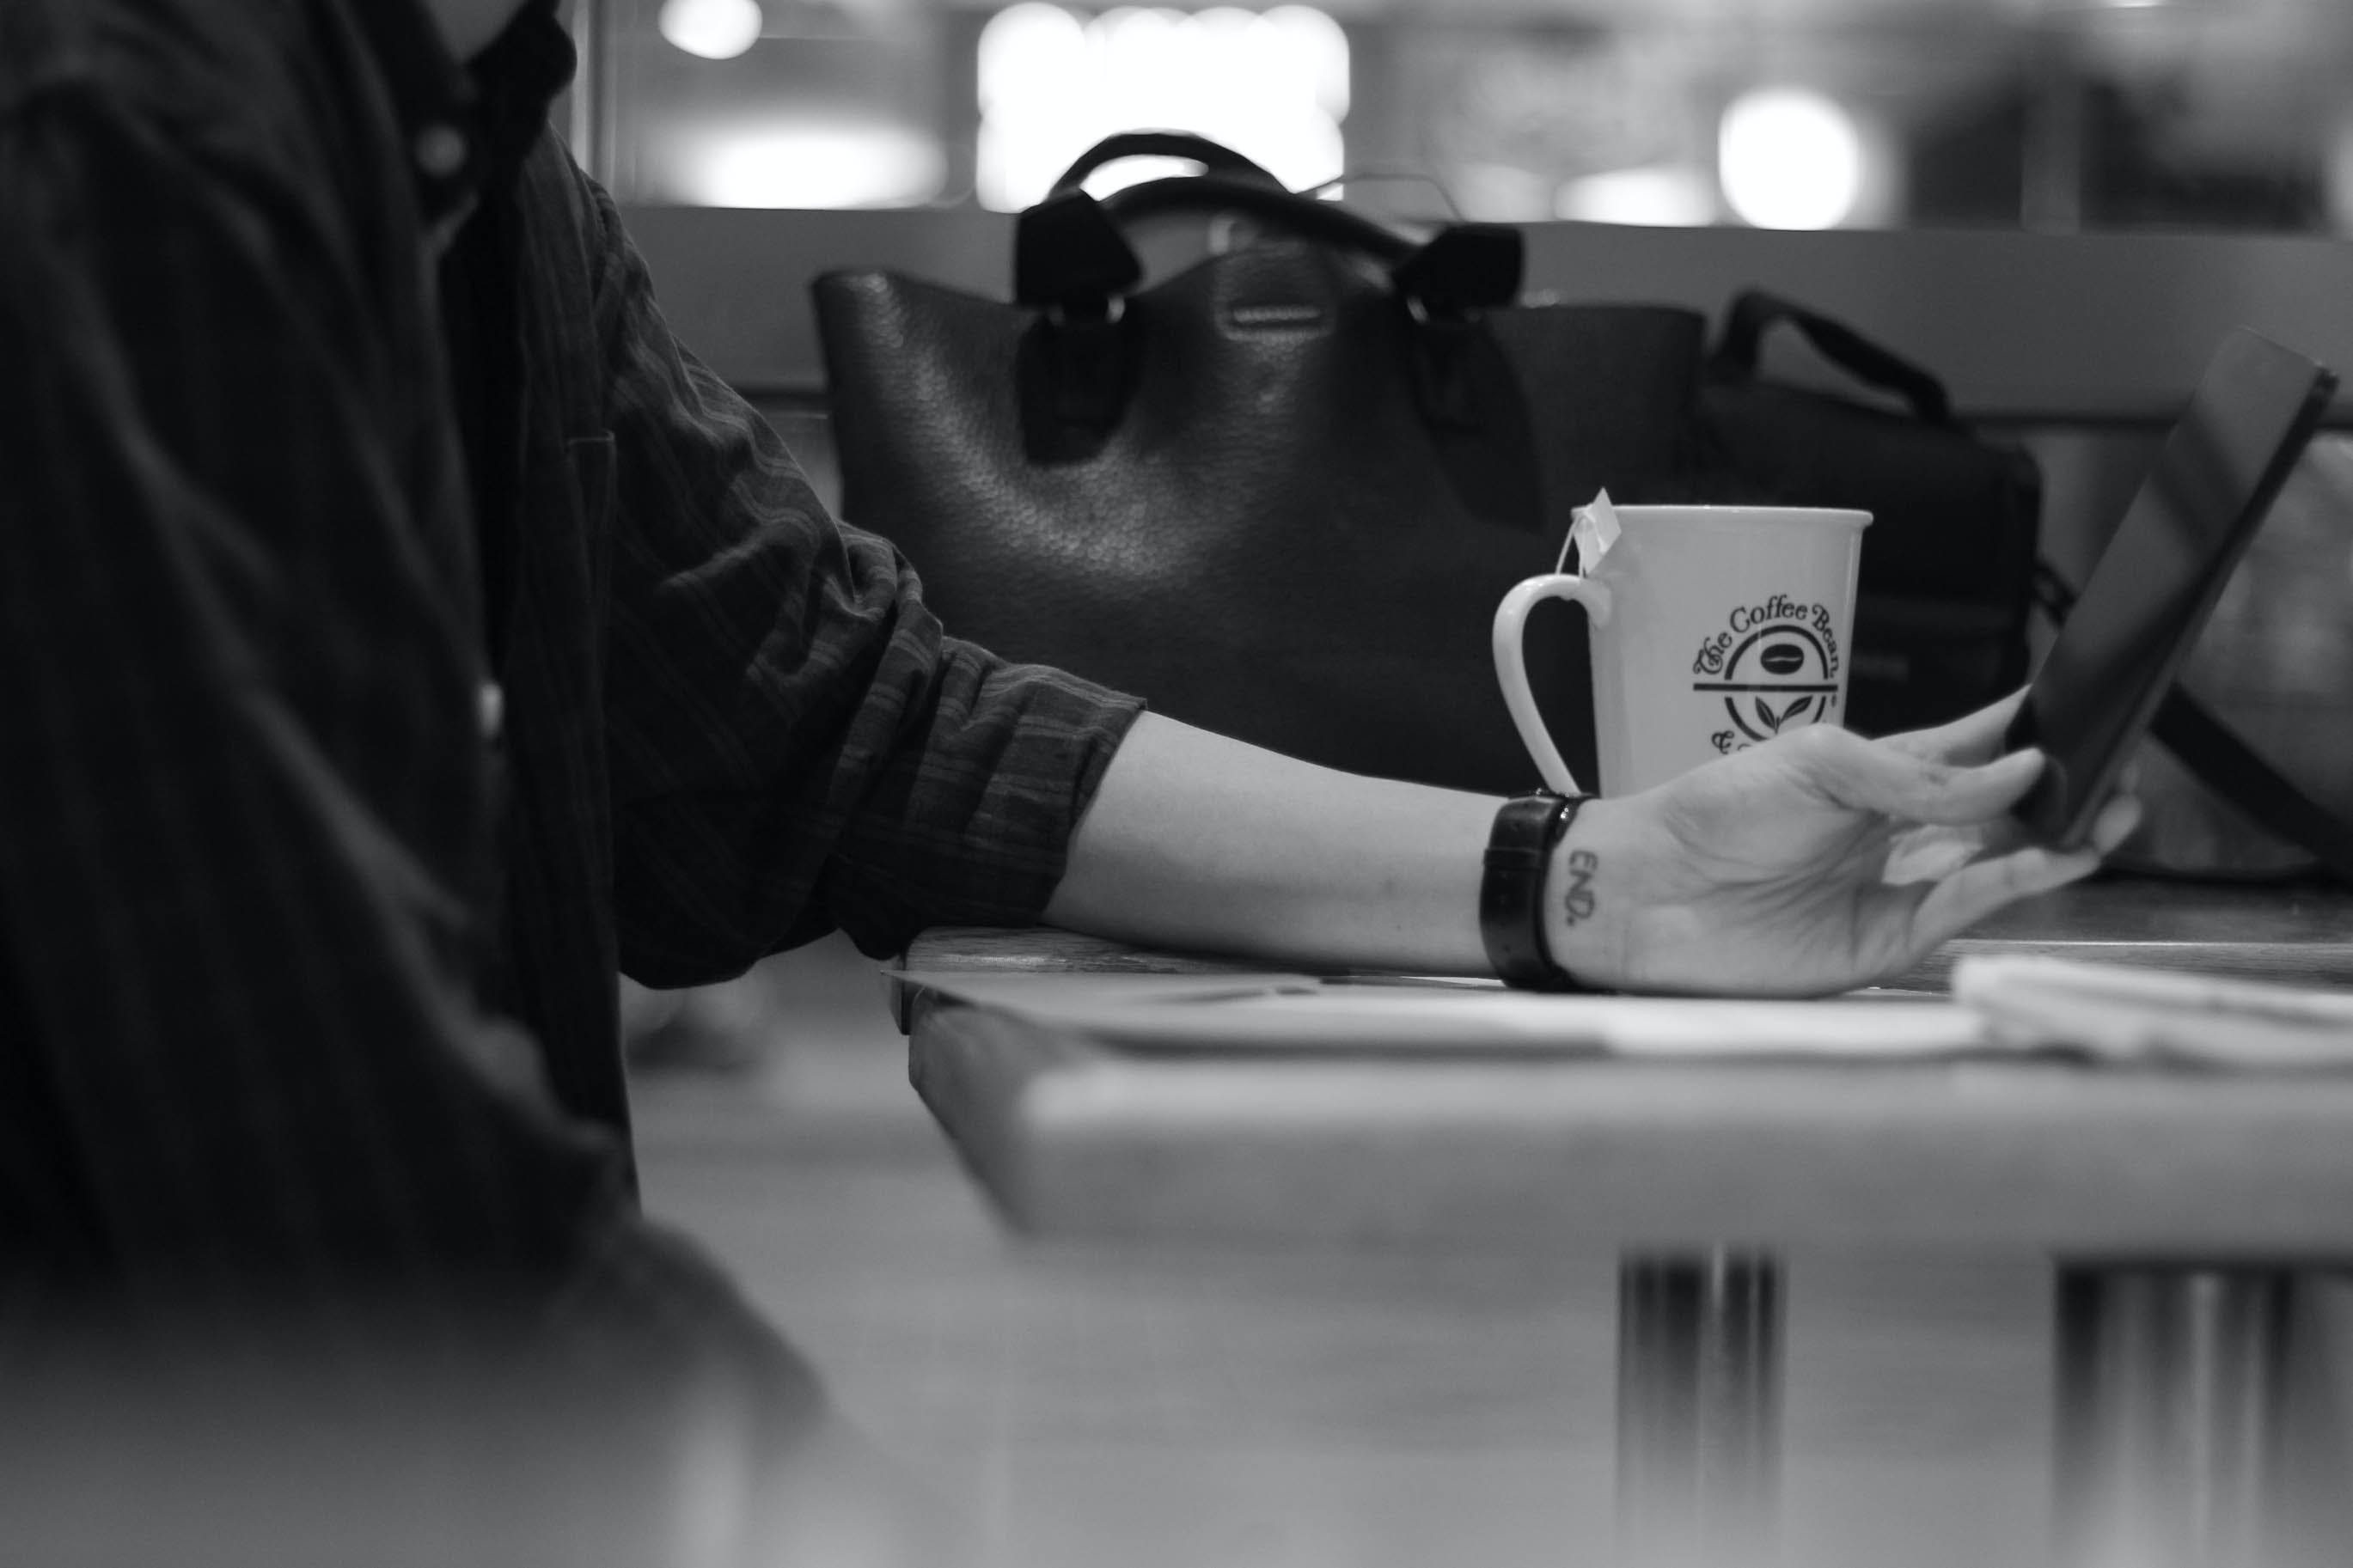 Gray Scale Photograph of Person Sitting Beside Black Leather Bag